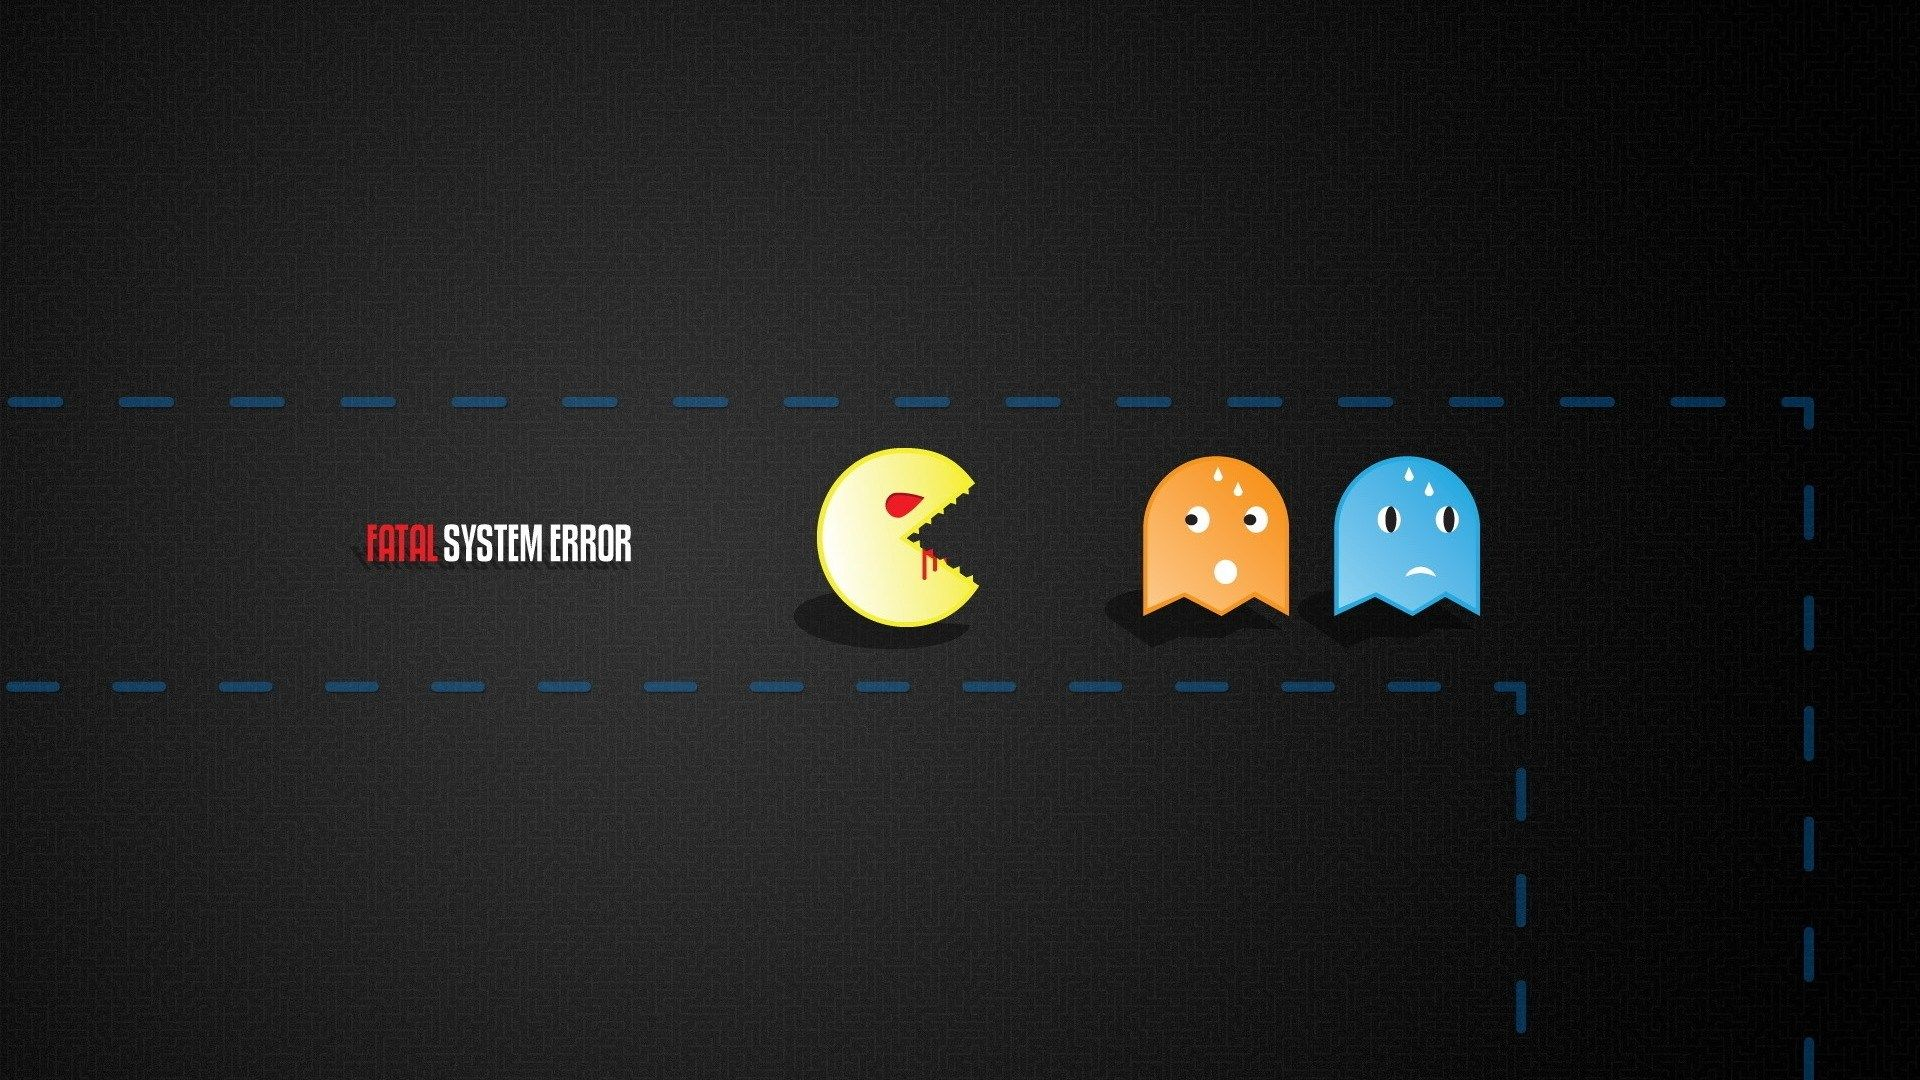 Popular Wallpaper Home Screen Pacman - e523db68dab9a1bce7570d353a694d9b  Collection_315931.jpg